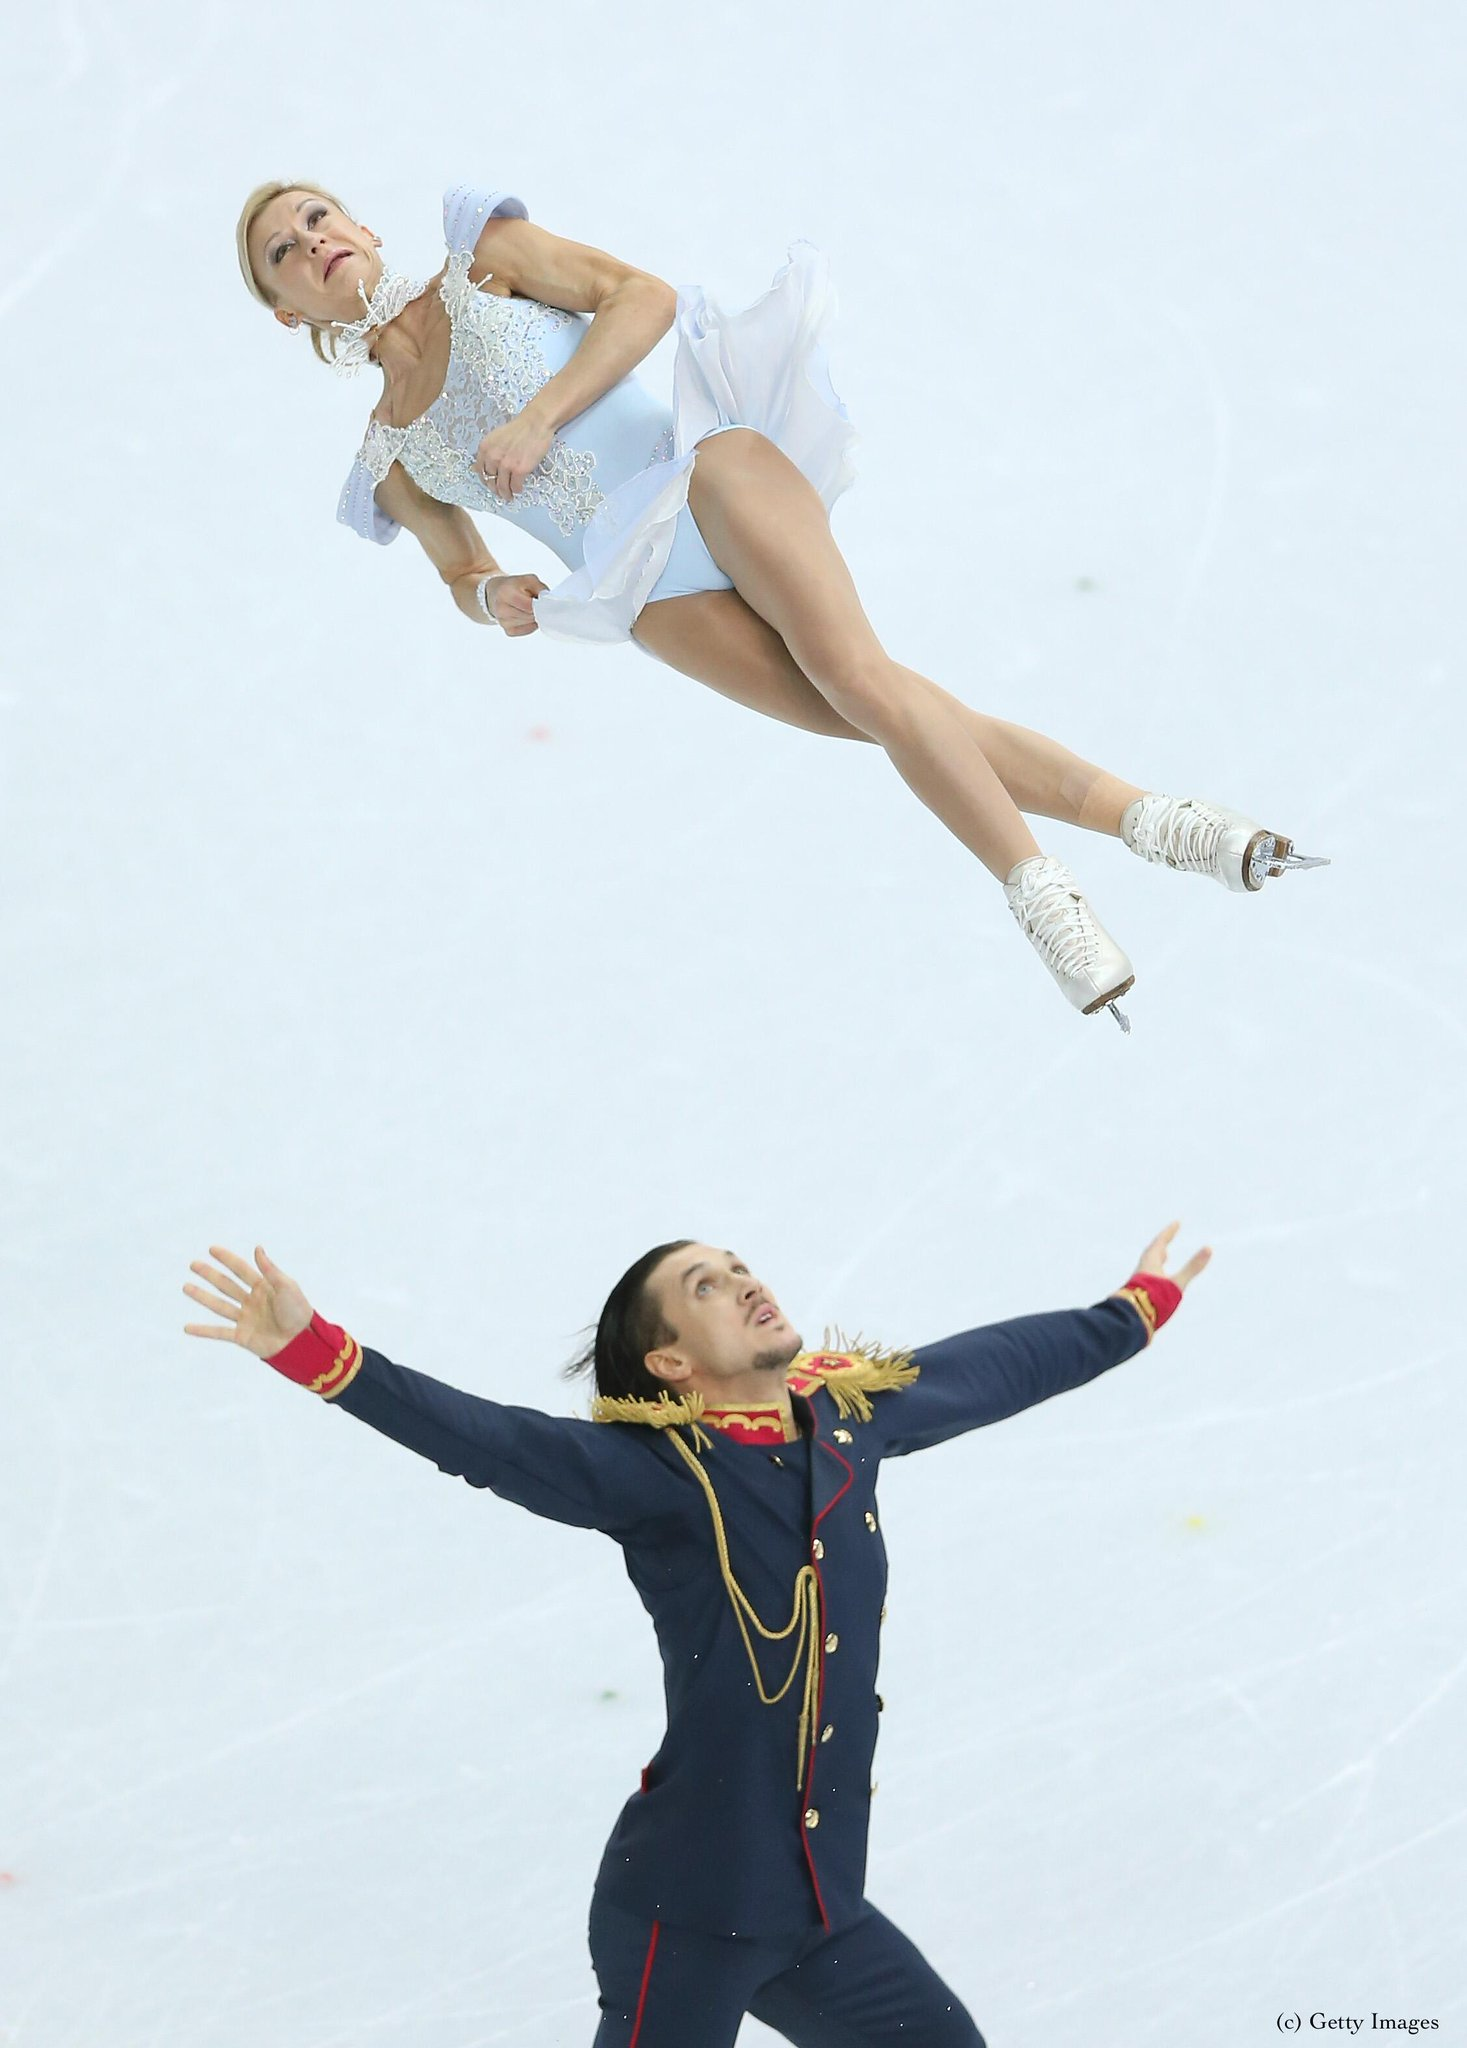 What a lift! #pairsskating #olympics http://t.co/de7oR7PBdf